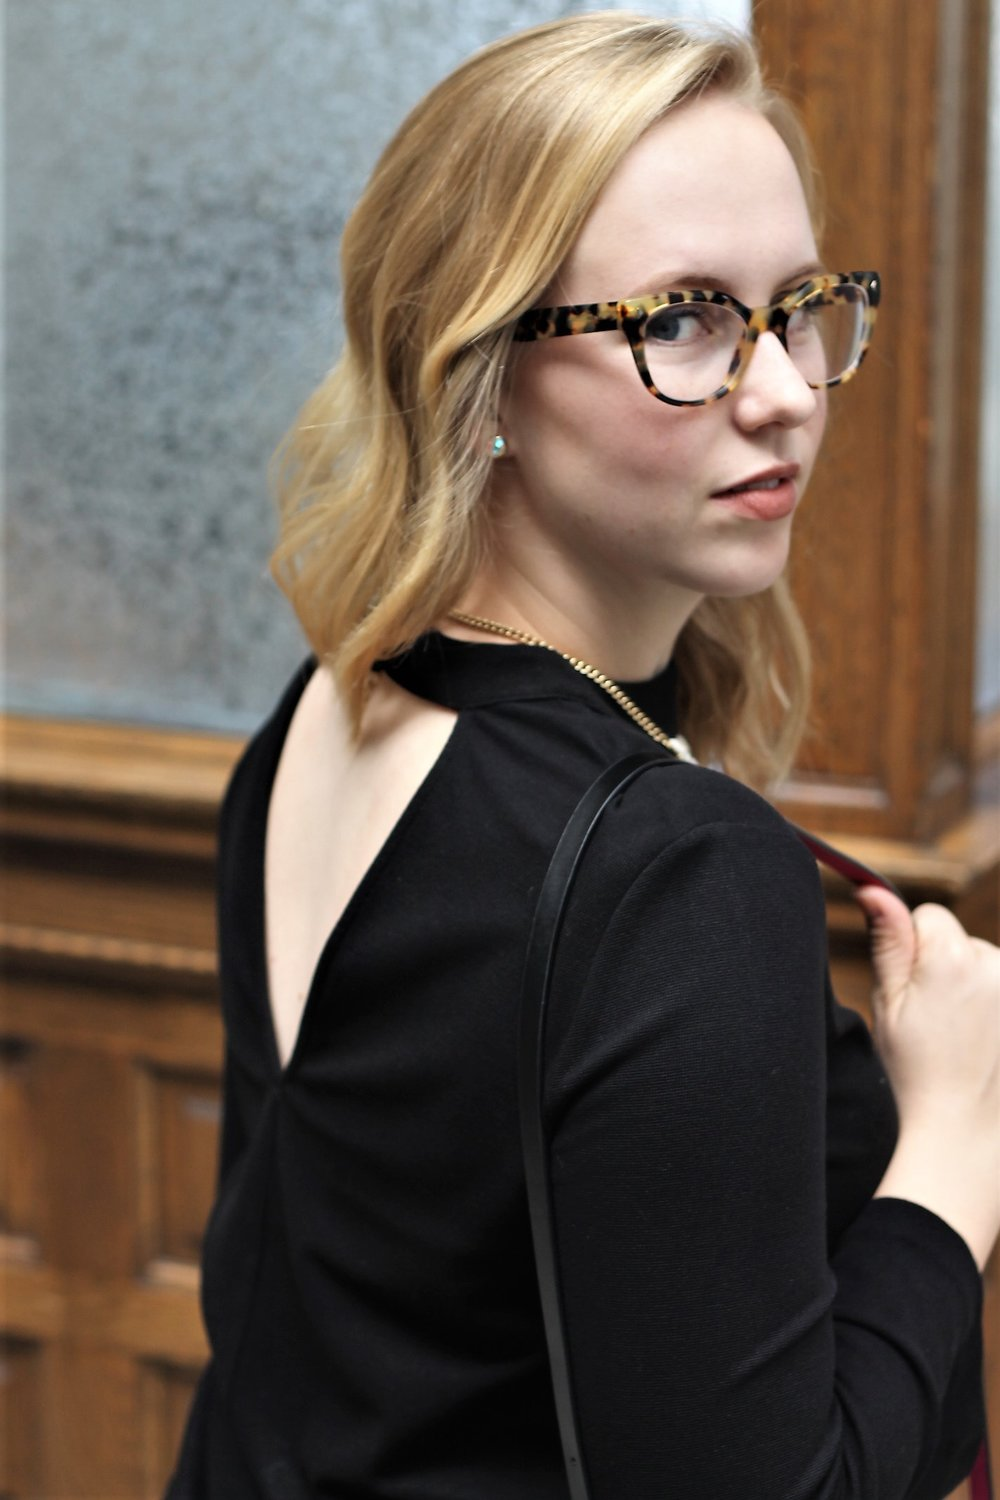 All Black with a Patterned Vest and Statement Necklace | Work & What She Wore